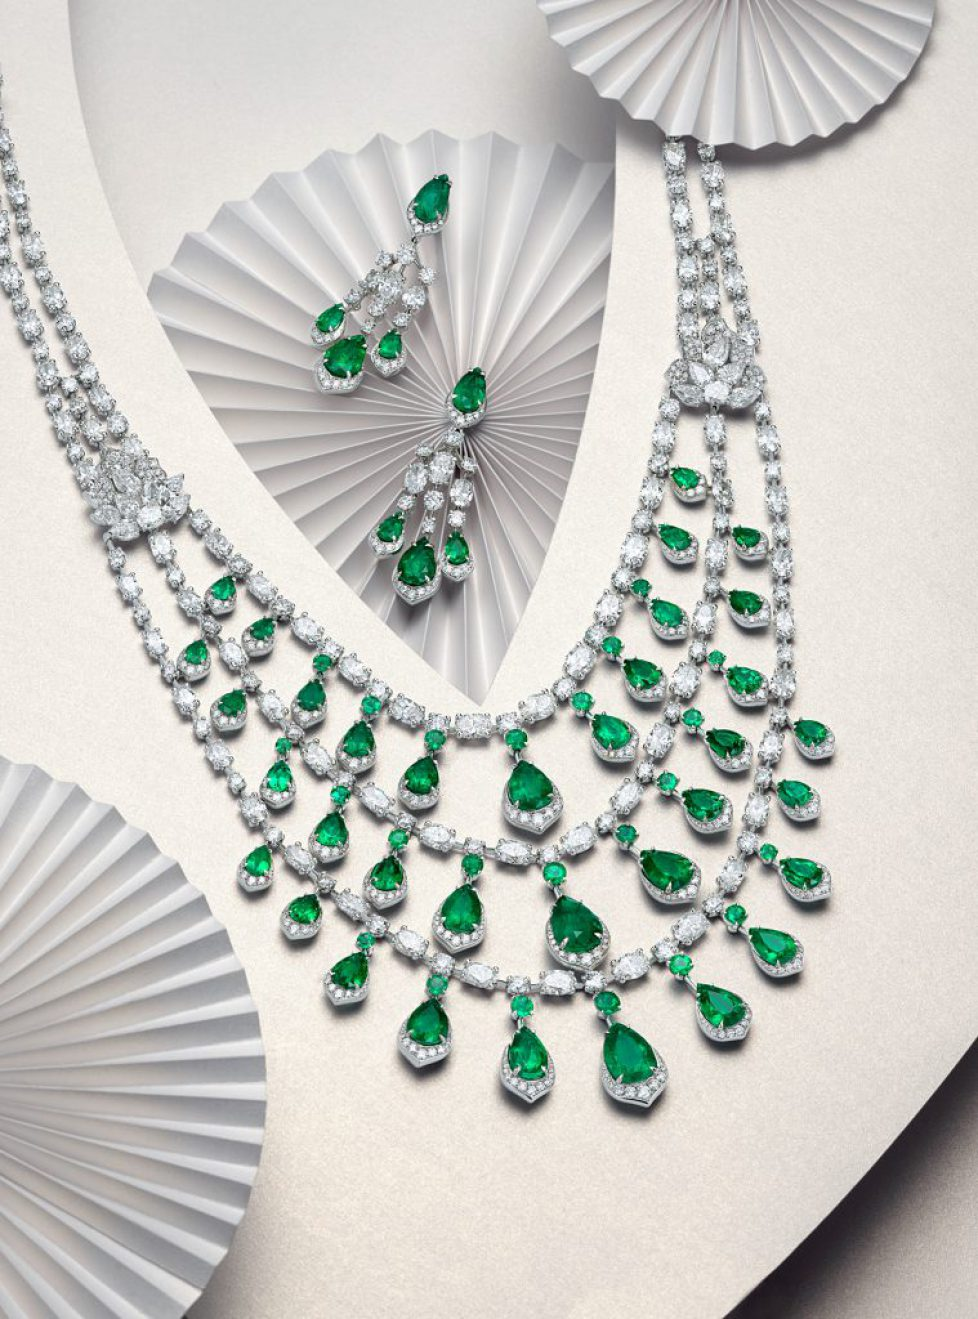 Emeralds-Image-placement-top-left-side-image-new